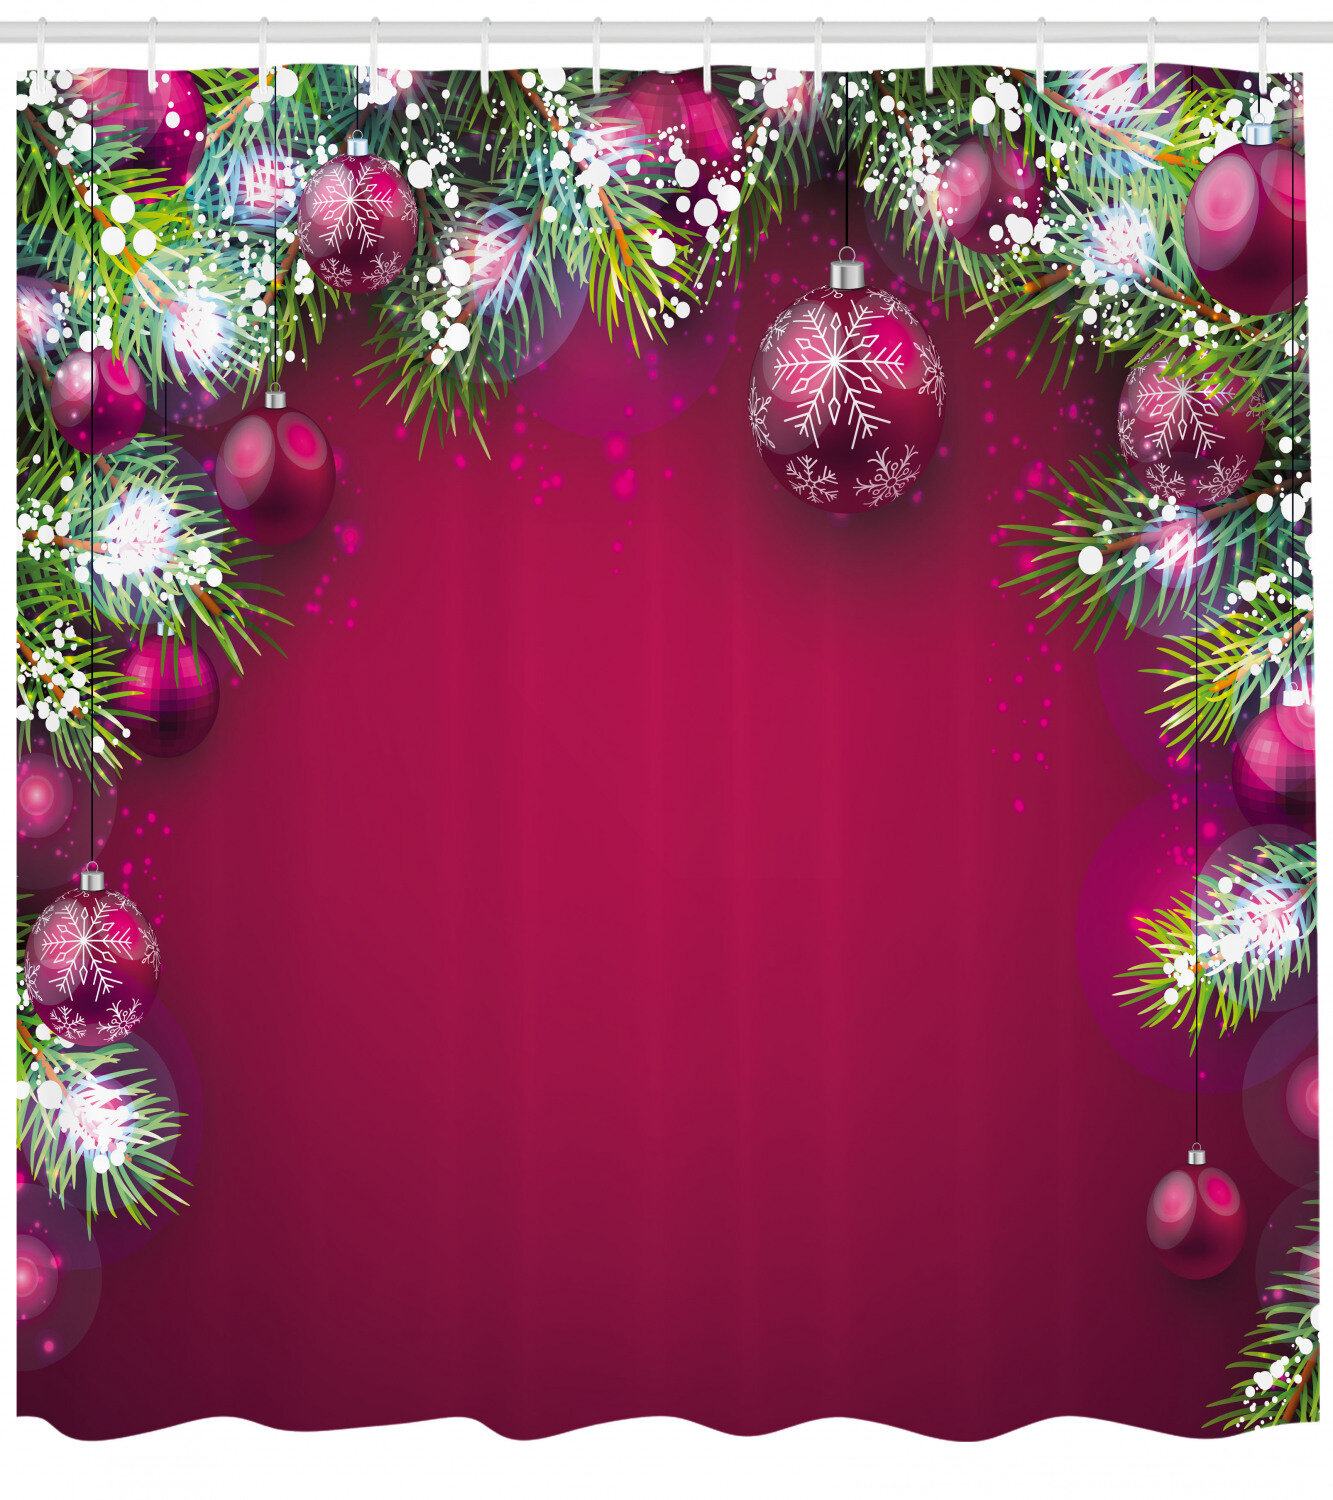 Ambesonne Christmas Shower Curtain Traditional Composition With Fir Branches Vivid Balls Snowflakes Cloth Fabric Bathroom Decor Set With Hooks 75